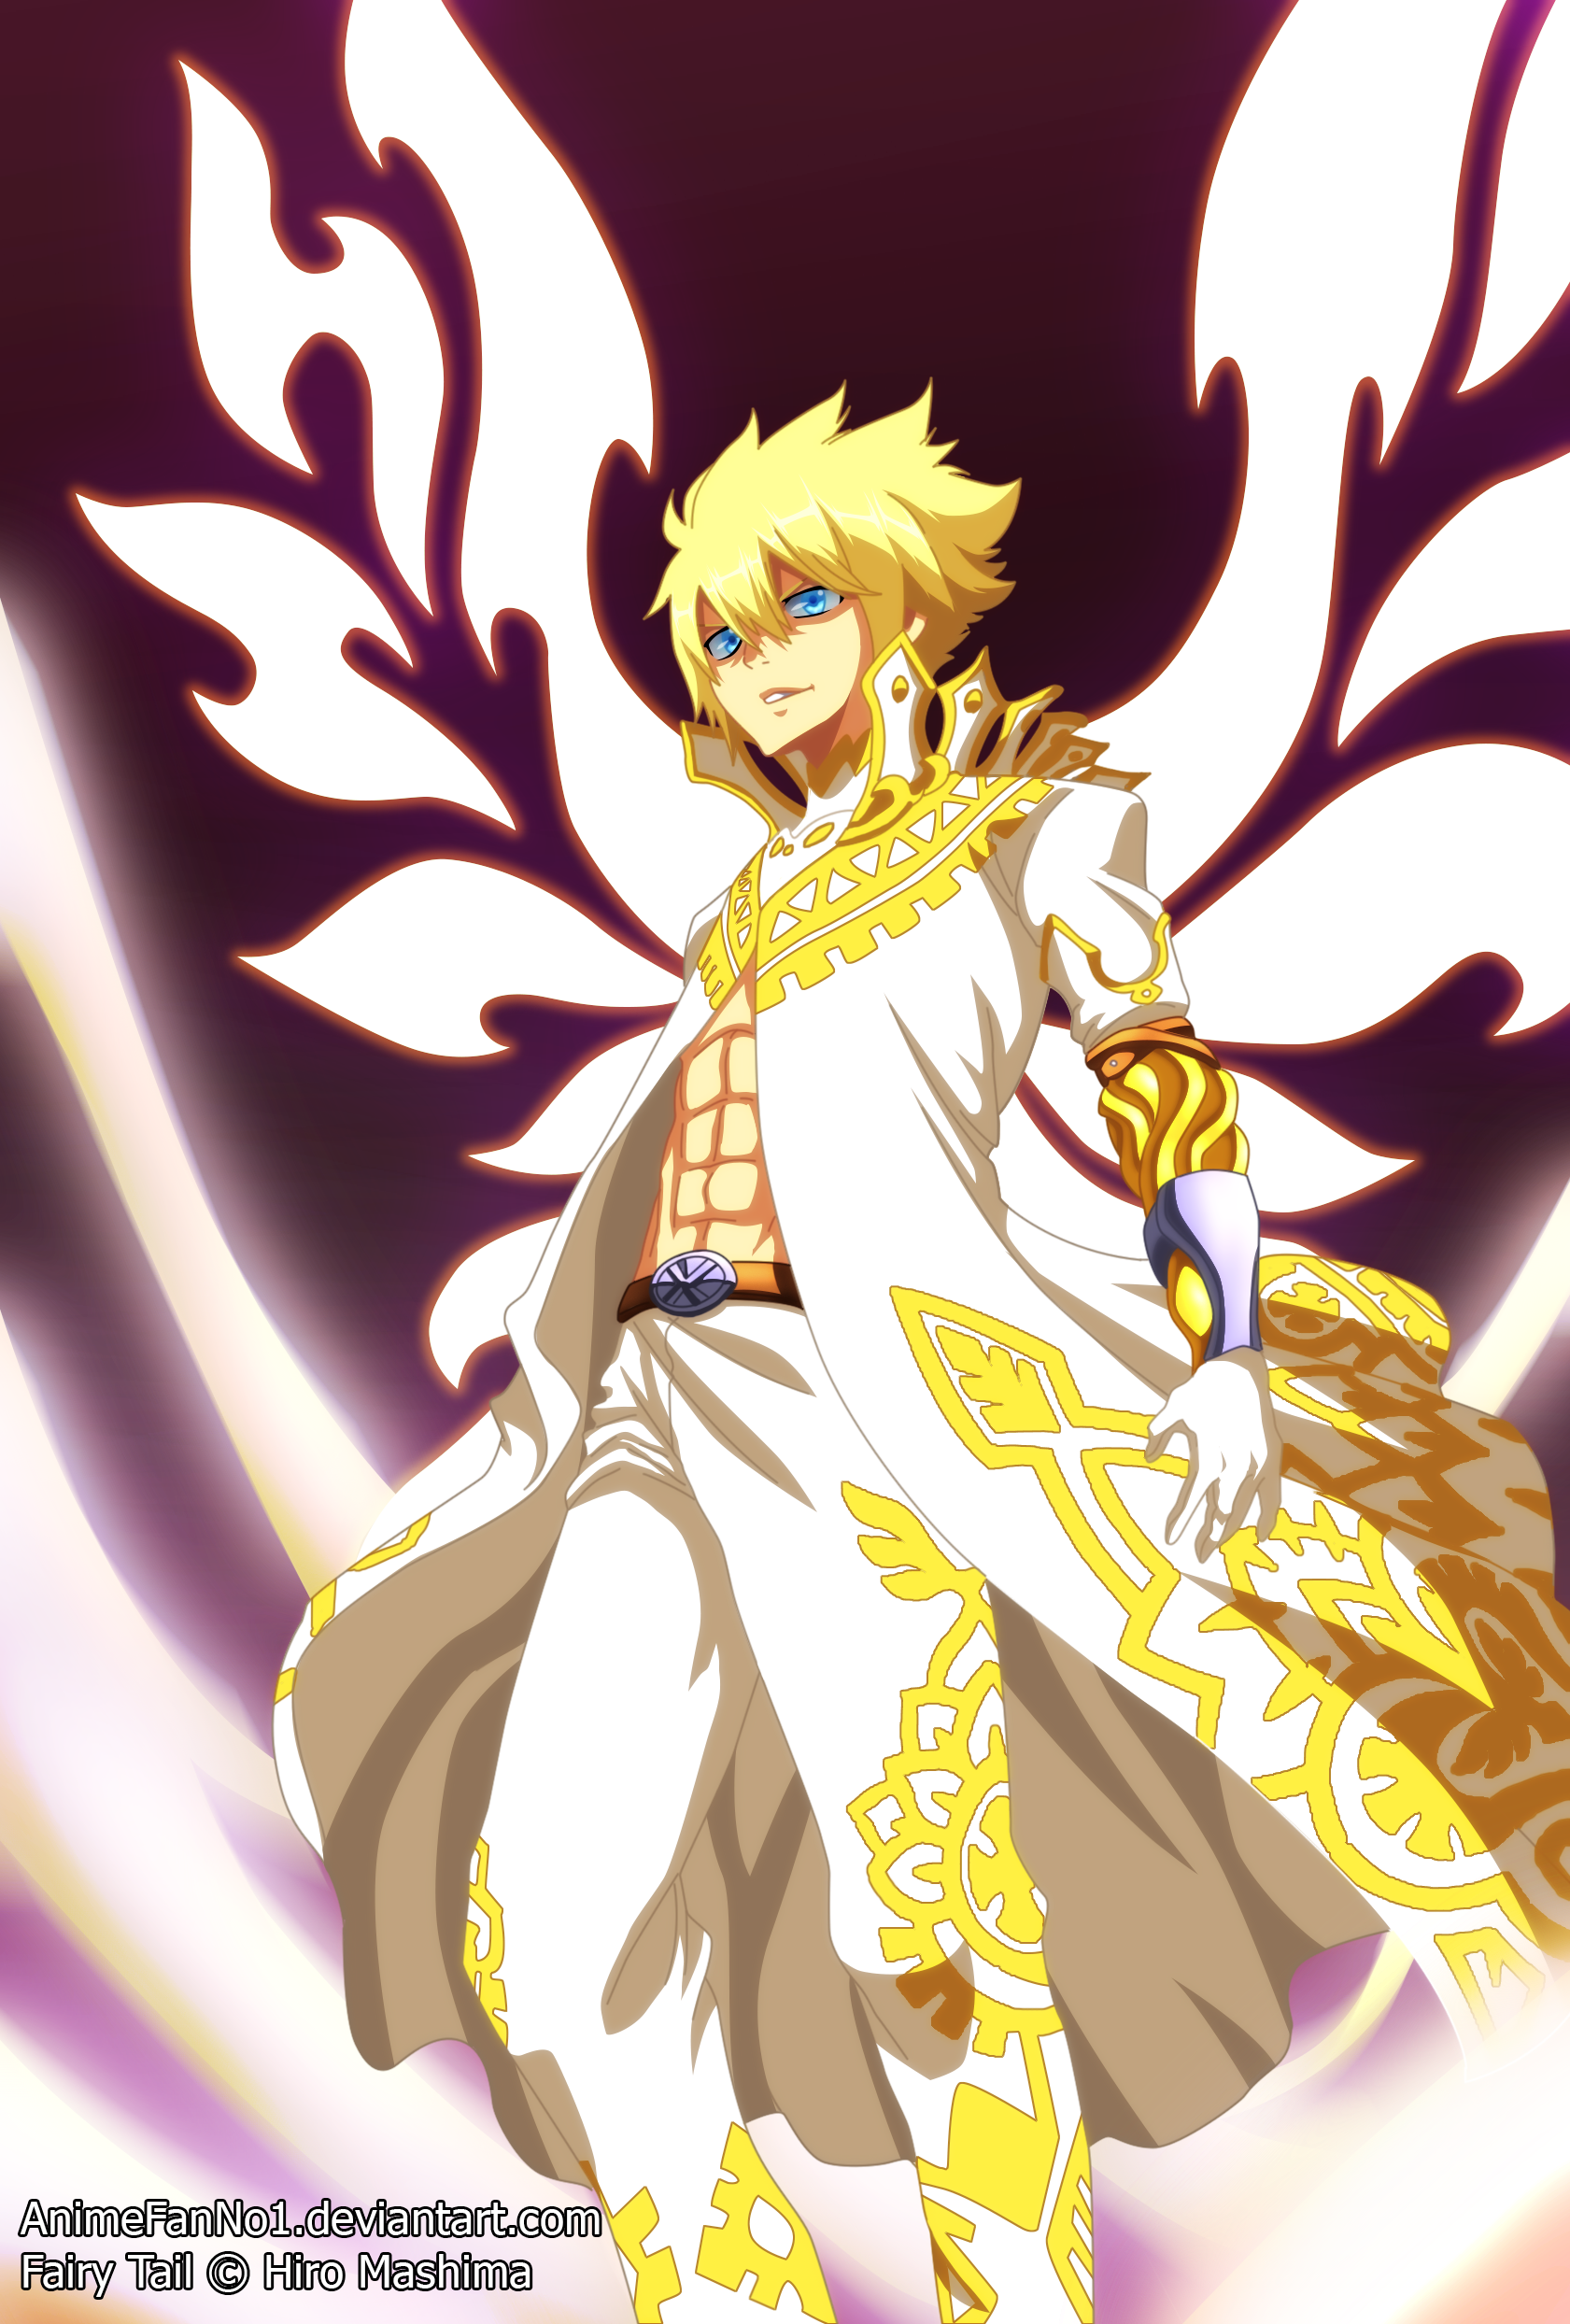 Fairy Tail Chapter 532 - Zeref's God Form by AnimeFanNo1 on DeviantArt